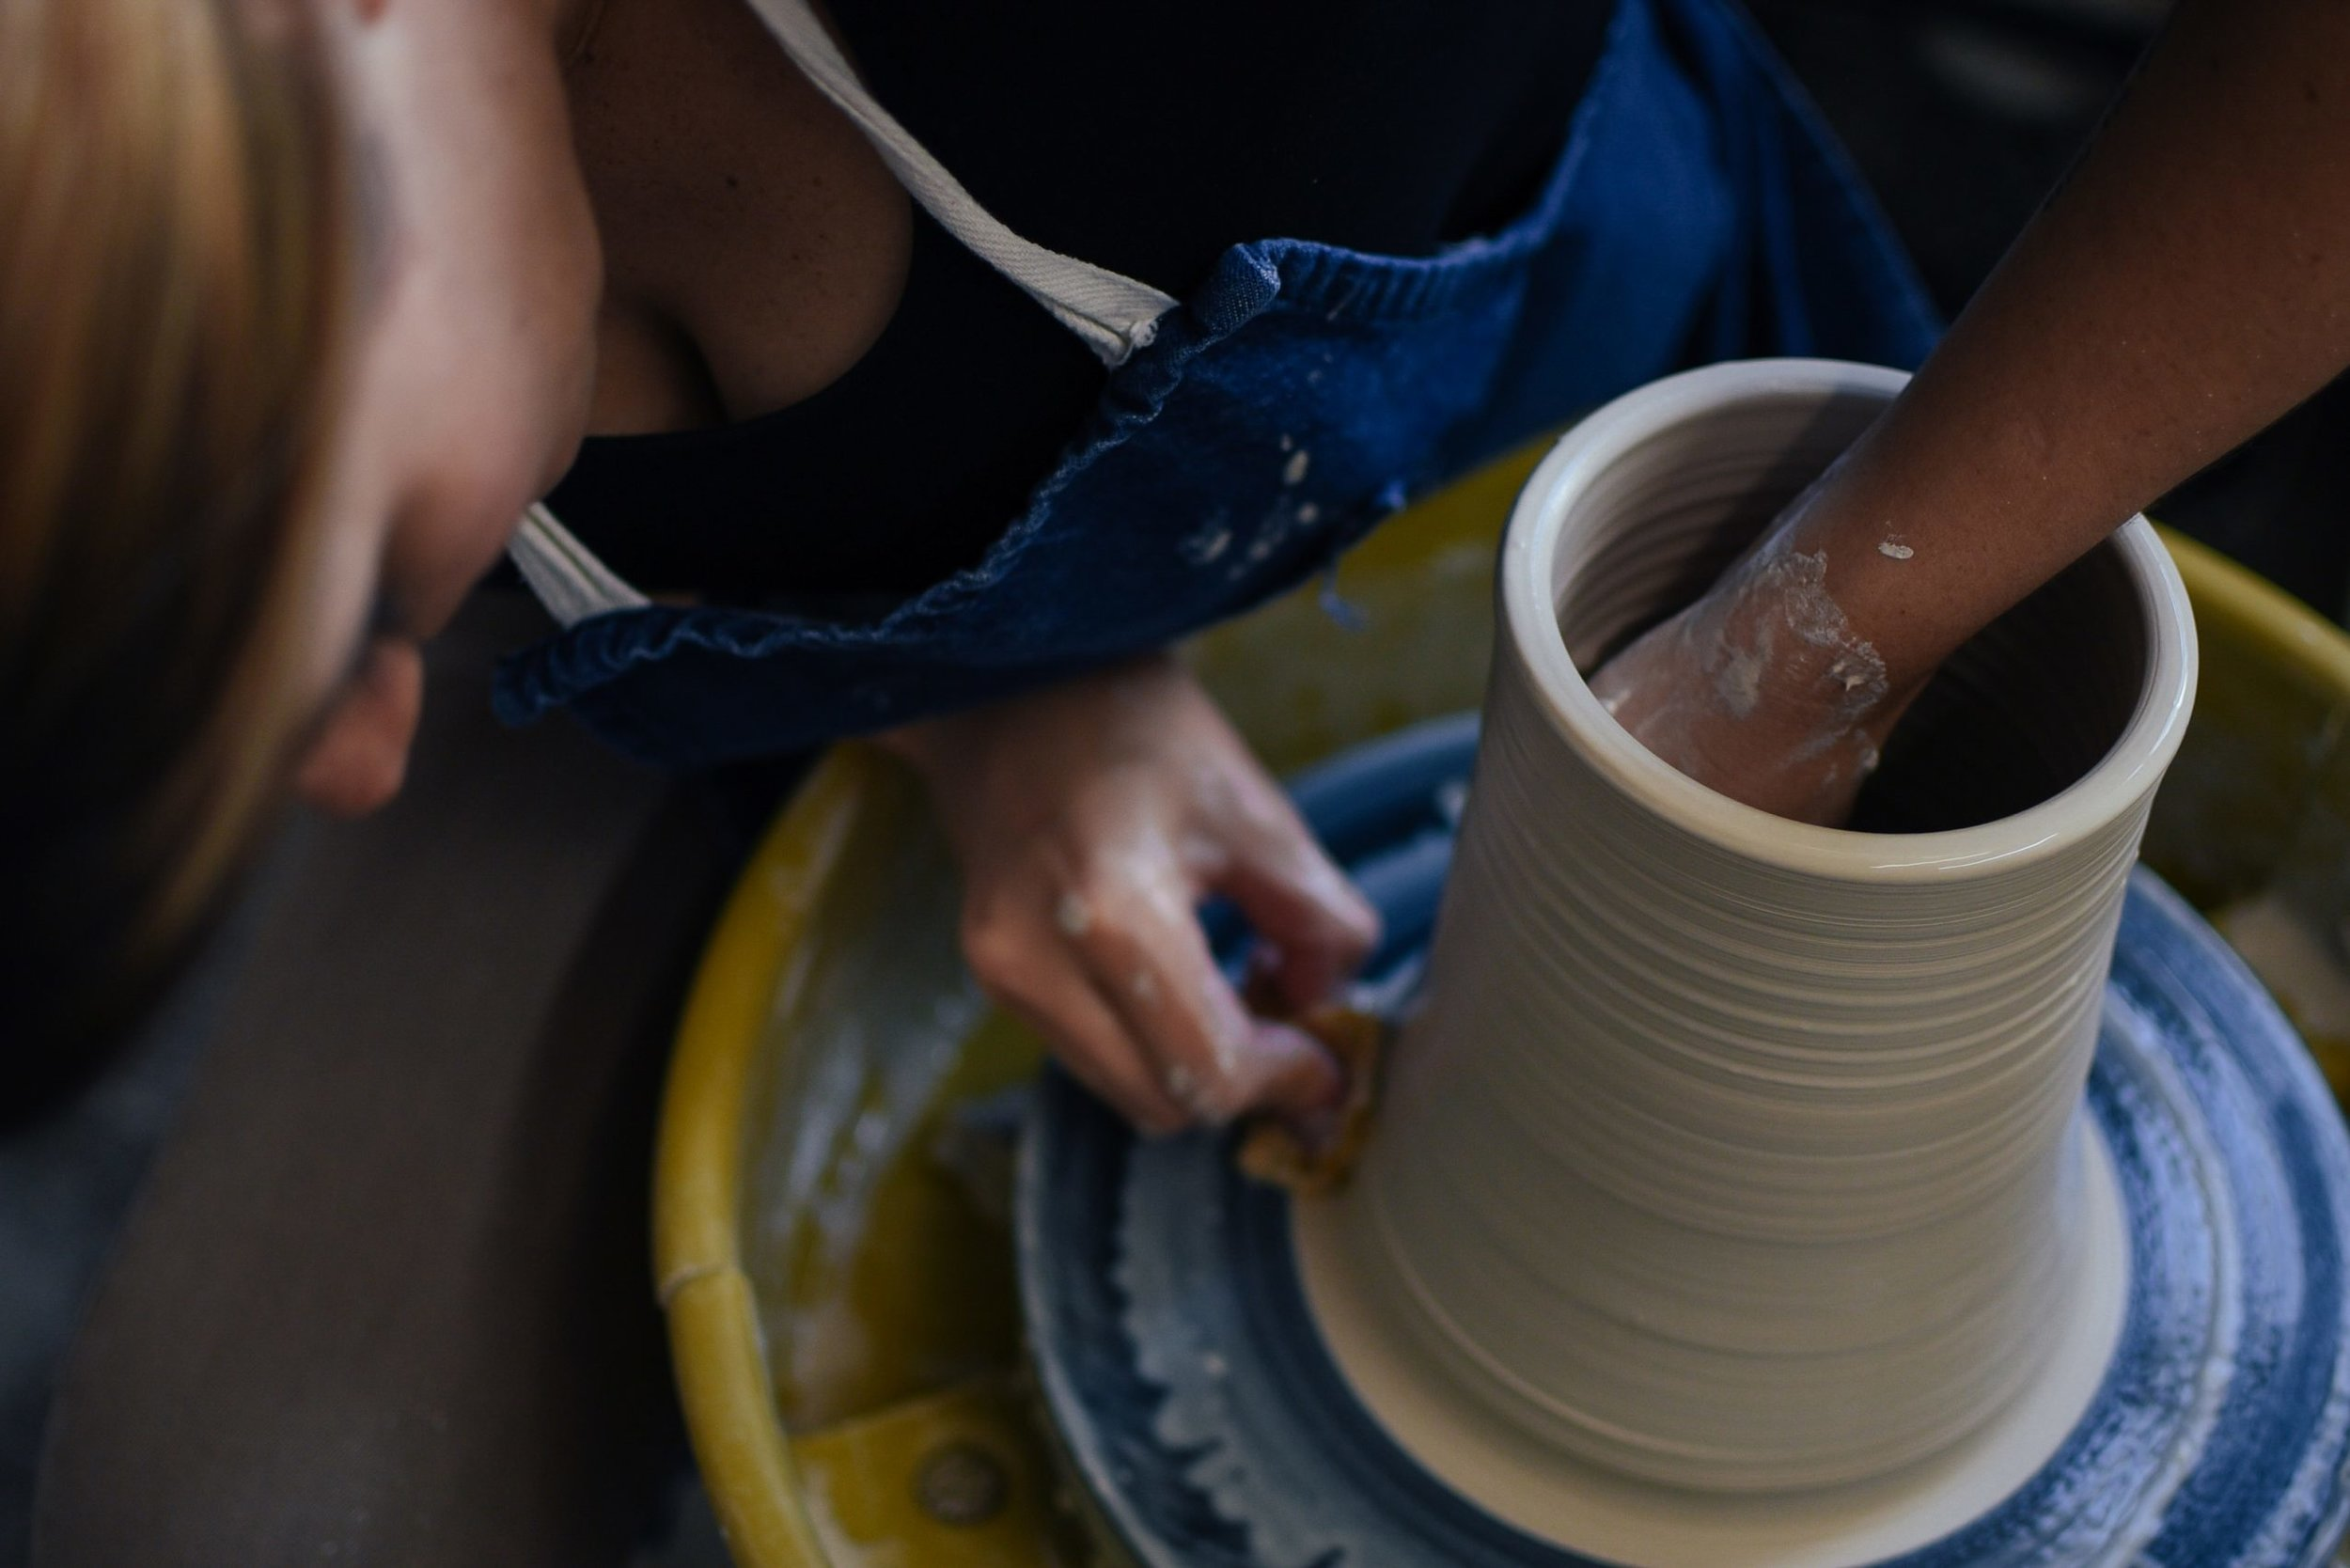 Owner of Box Sparrow Studio, Abbie Preston, Creating One-of-a-Kind Ceramic Pieces